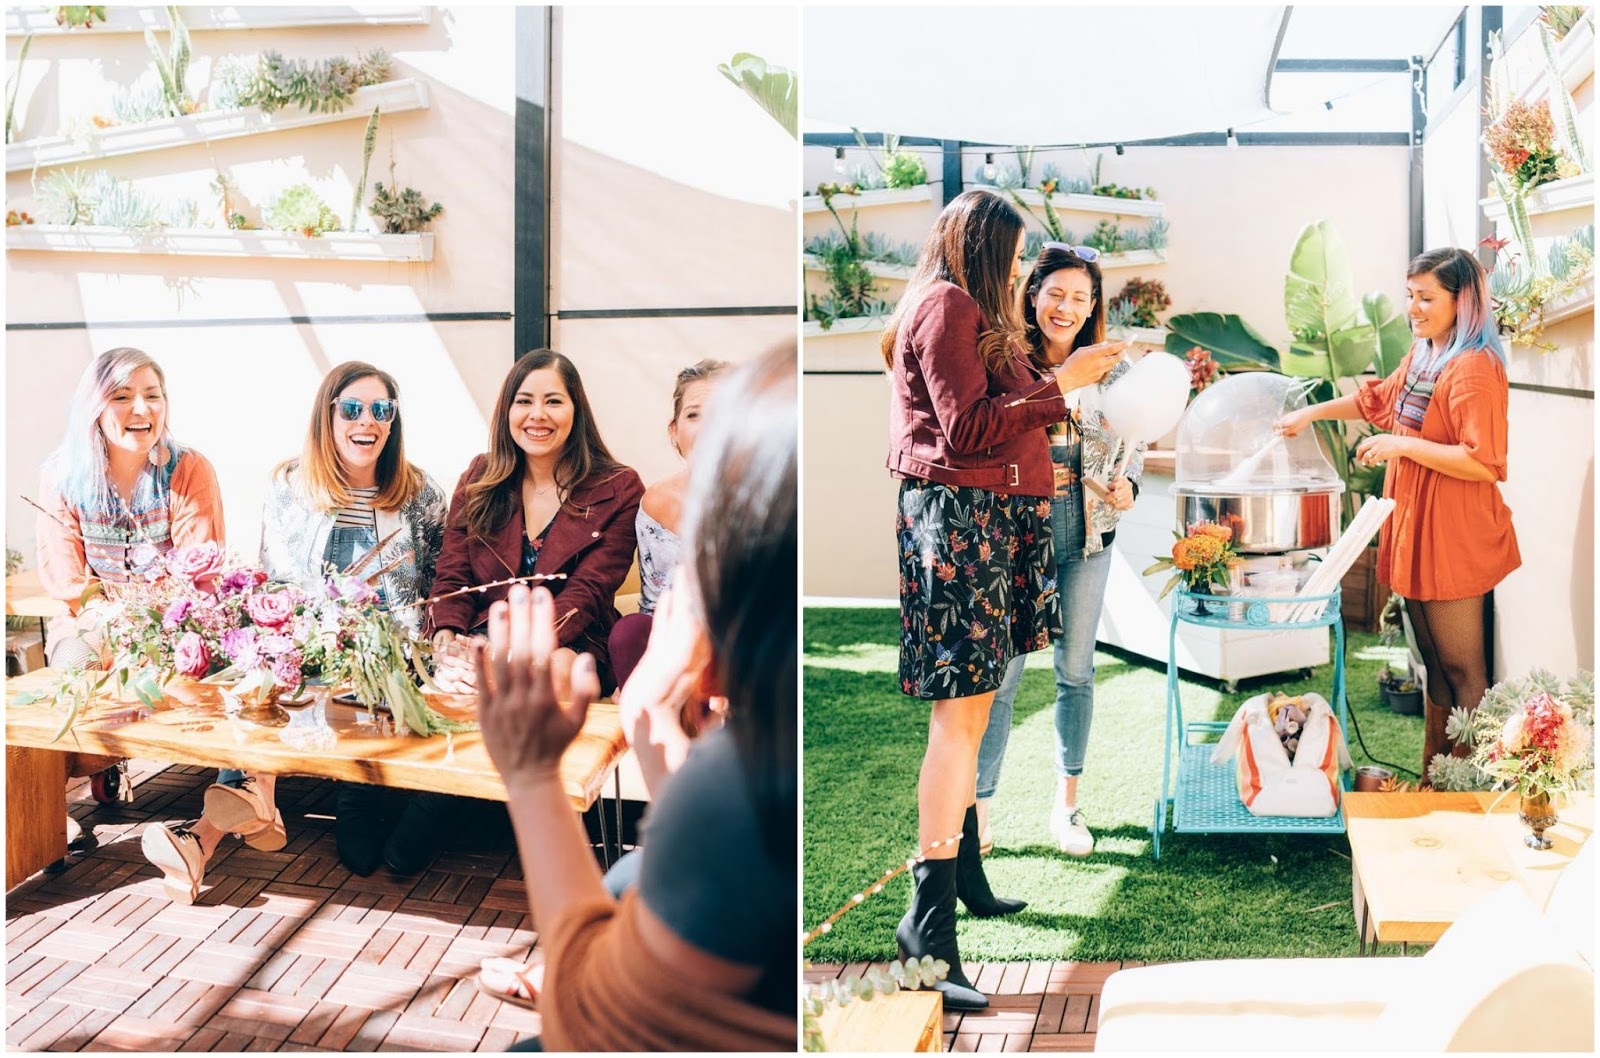 how to network with influencers in san diego, san diego influencer meetup, san diego young businesswomen